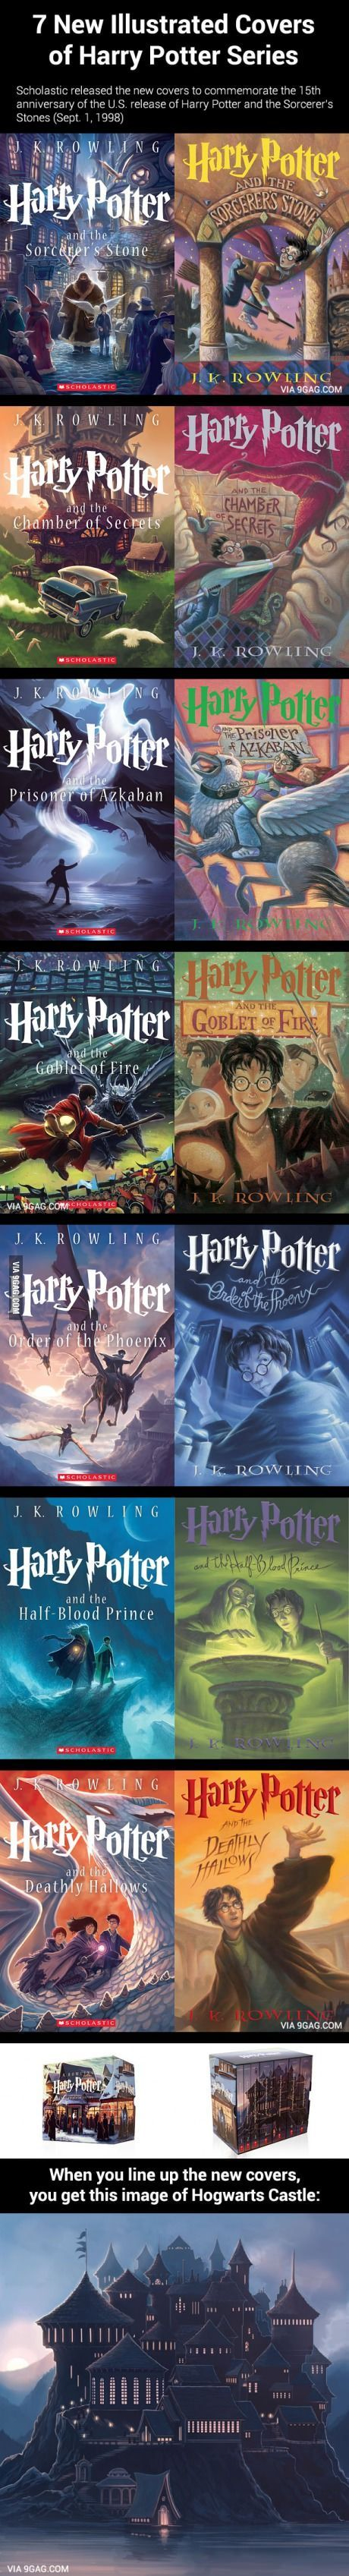 337 best images about harry and ginny on pinterest harry birthday - Funny Pictures About New Illustrated Covers Of Harry Potter Oh And Cool Pics About New Illustrated Covers Of Harry Potter Also New Illustrated Covers Of